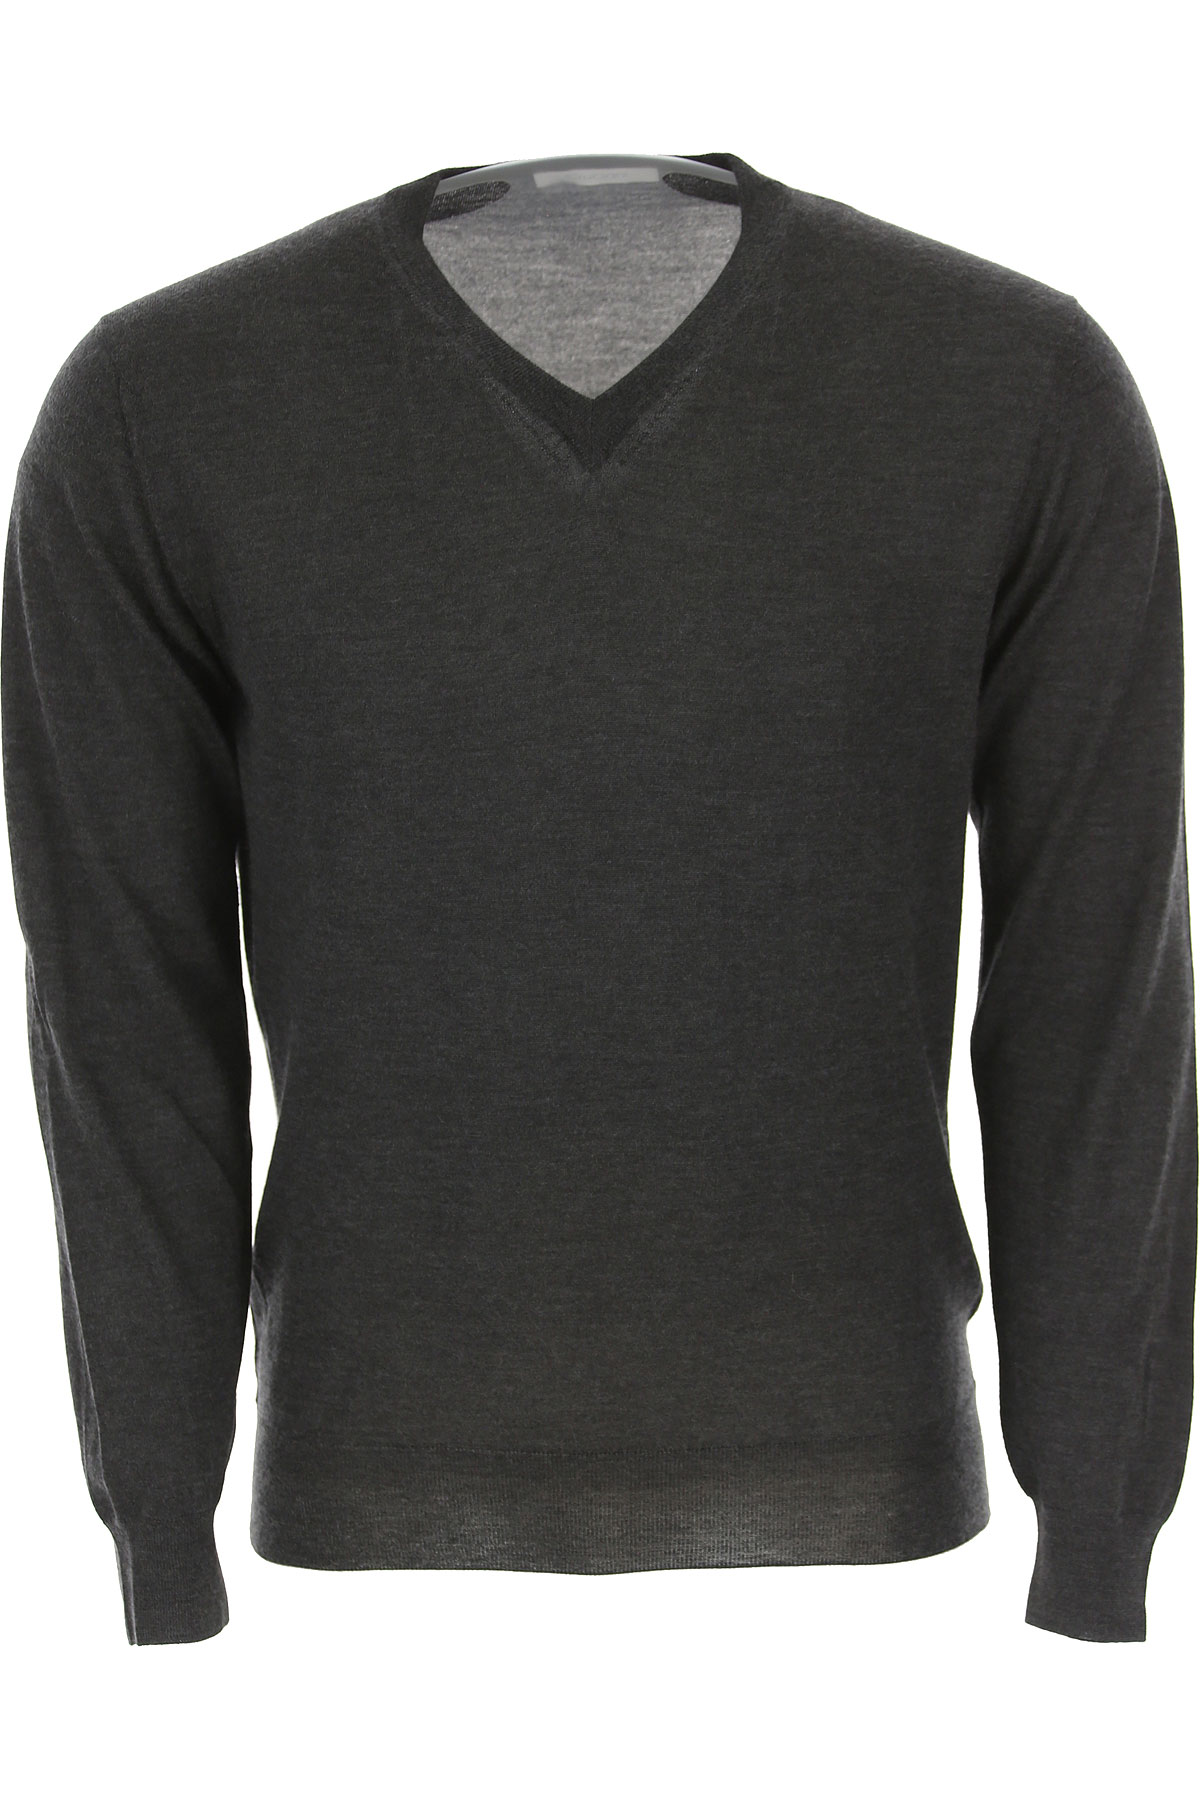 Image of Cruciani Sweater for Men Jumper, Anthracite Grey, Cashmere, 2017, L M